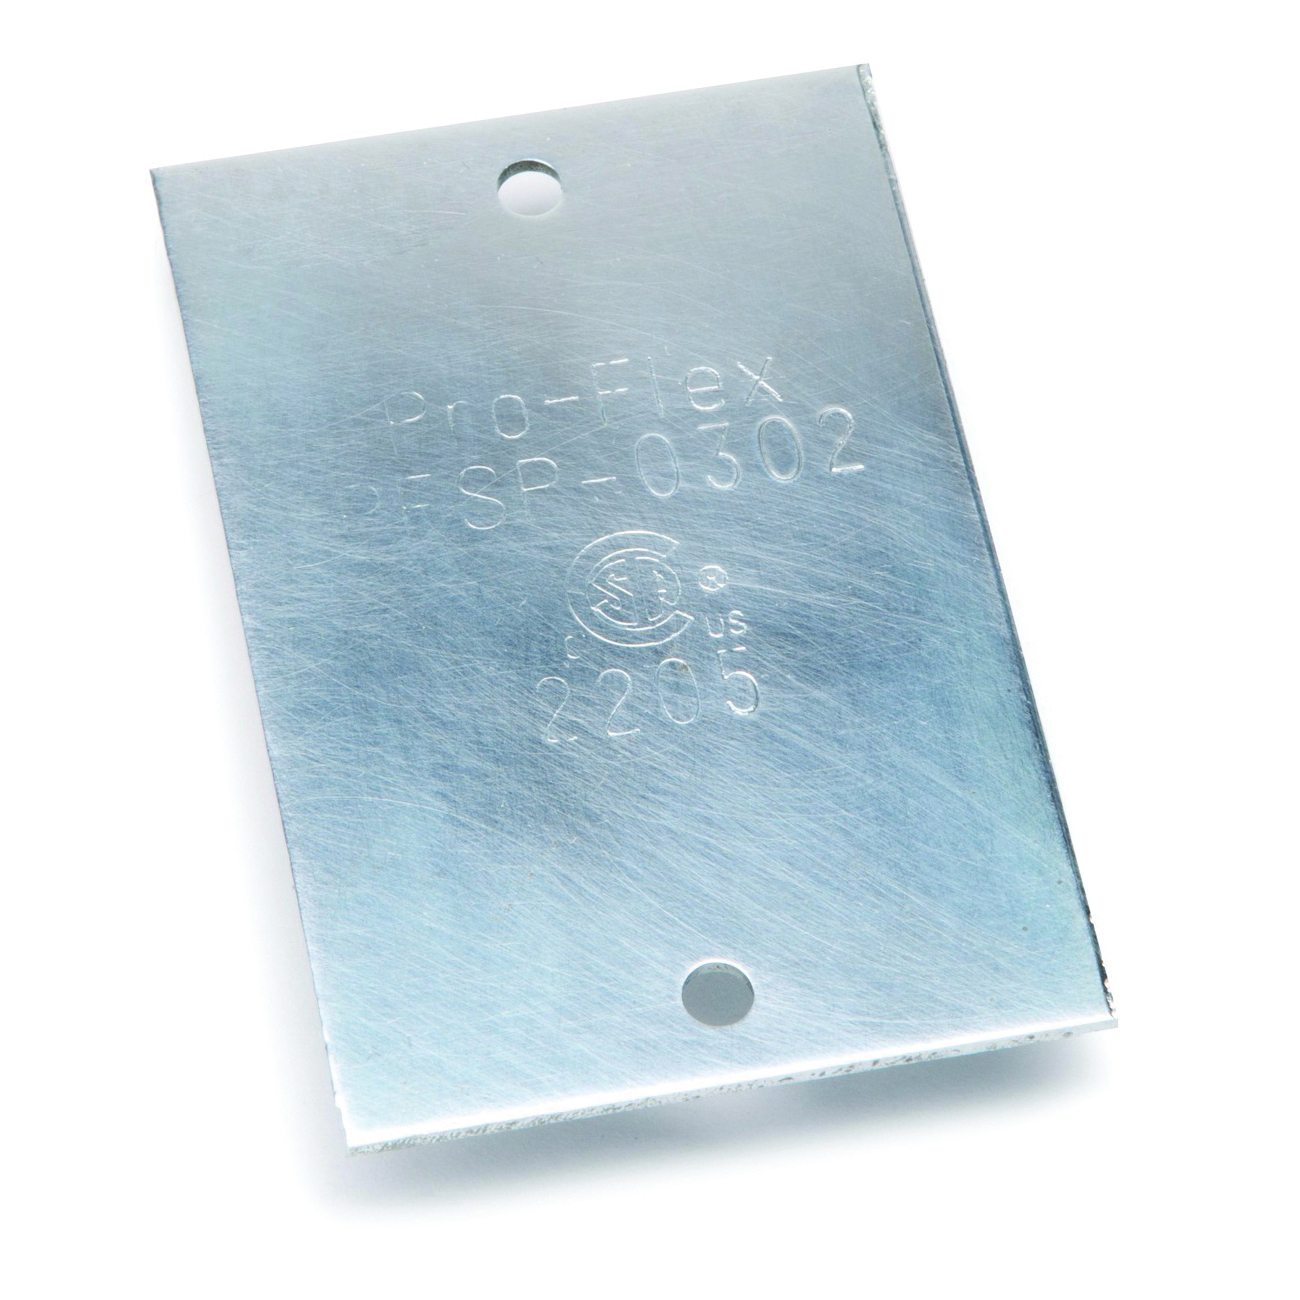 Picture of PRO-FLEX PFSP-0302 Striker Plate, For: Pro-Flex CSST Flexible Gas Piping System